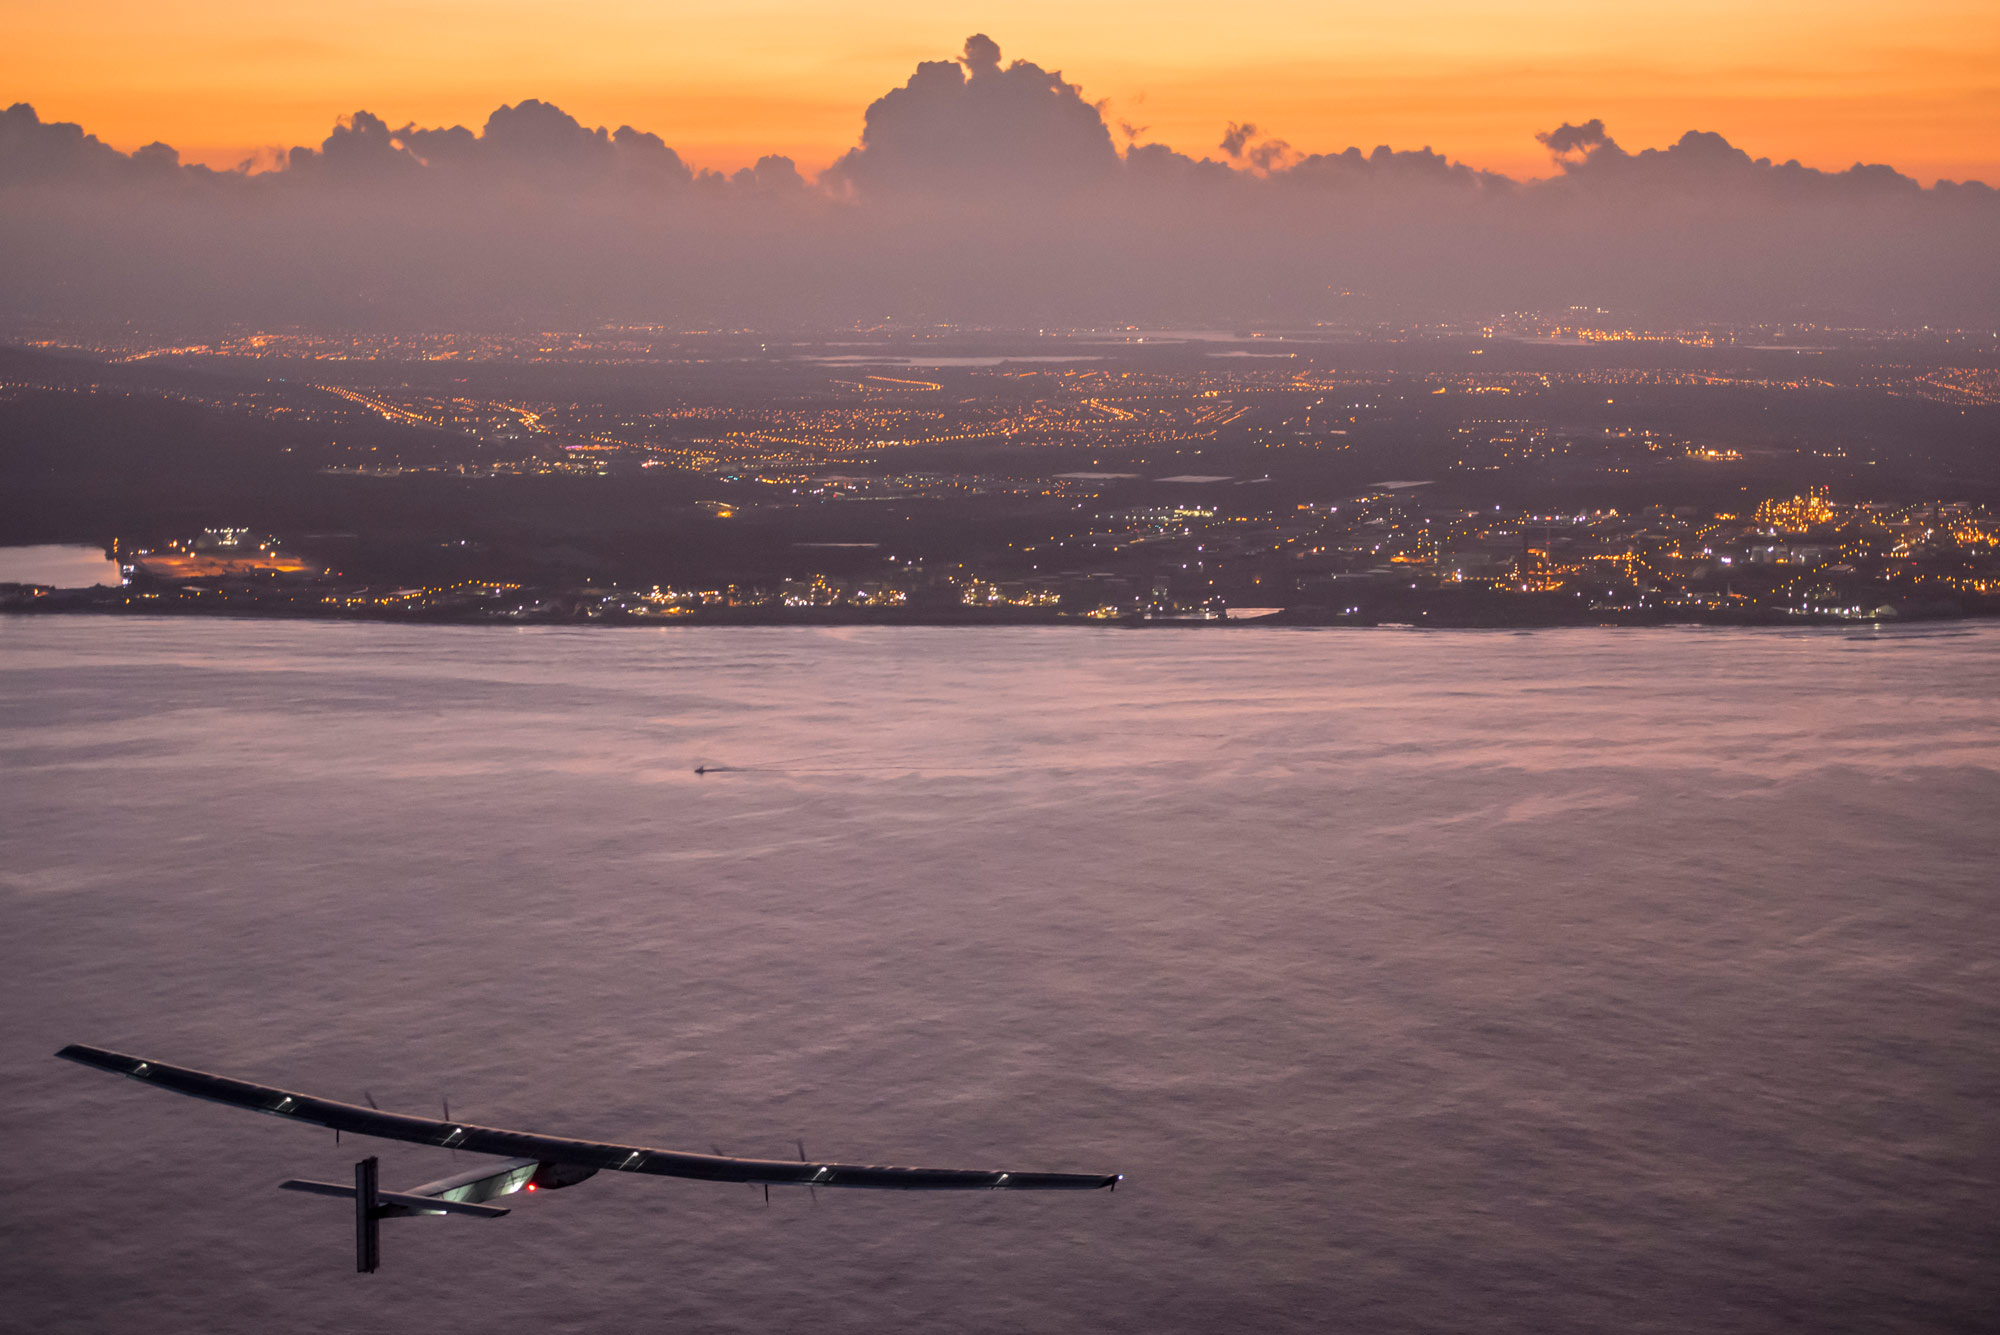 André Borschberg flies Solar Impulse 2 into Kalaeloa airport in Hawaii after flying for five consecutive days.